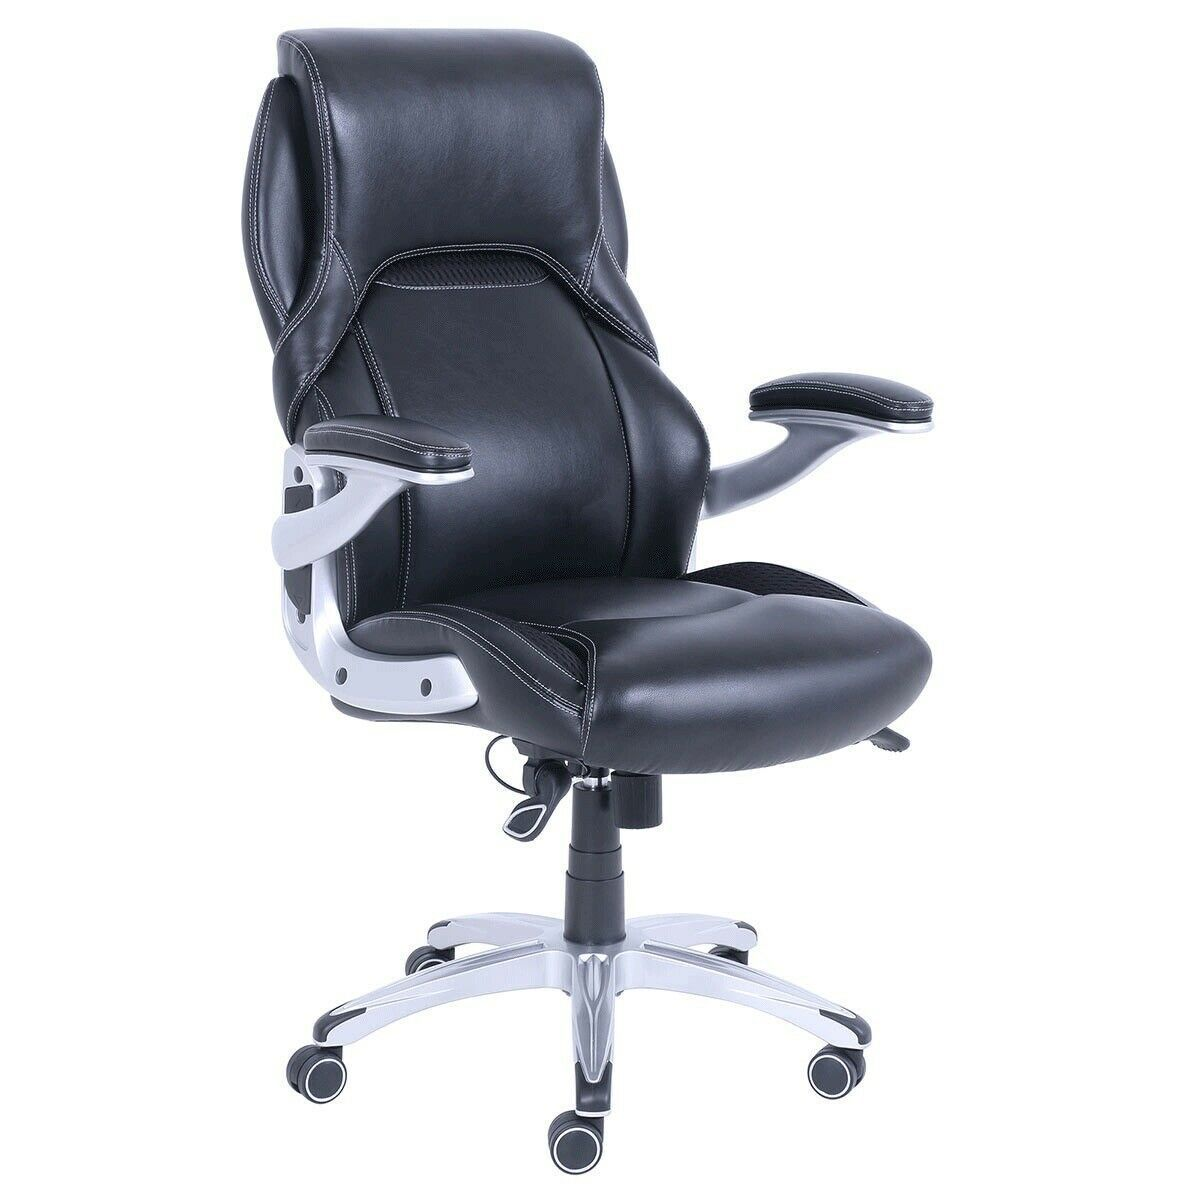 Magnificent True Wellness Black Bonded Leather Managers Executive Chair Machost Co Dining Chair Design Ideas Machostcouk